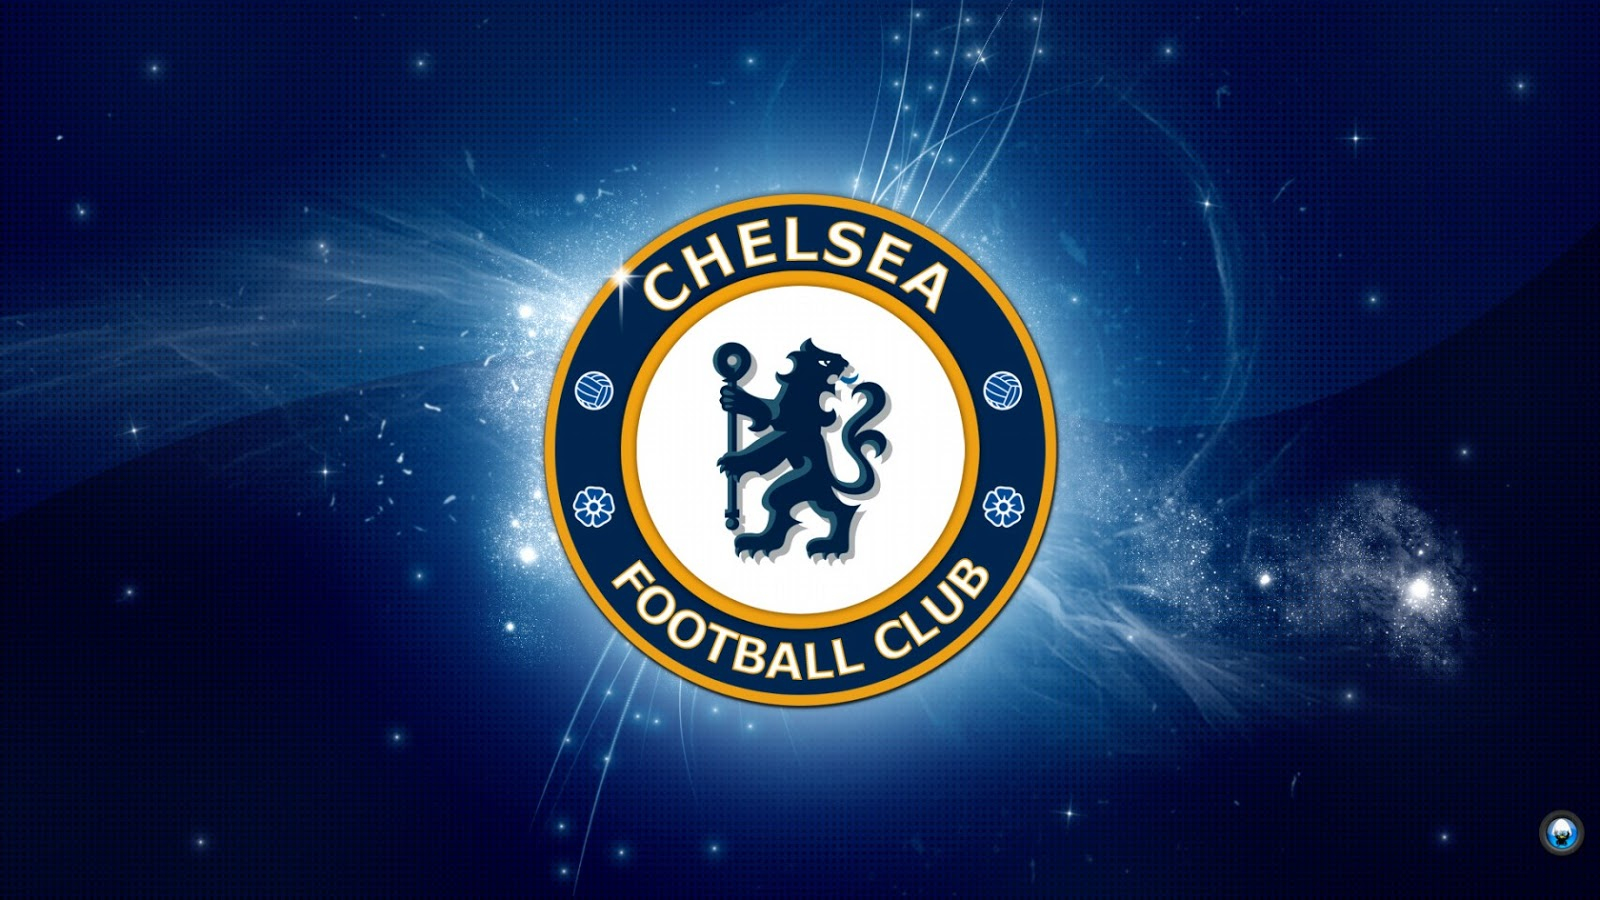 Chelsea FC Logo Wallpapers 2013 Christmas wallpaper 2013 1600x900